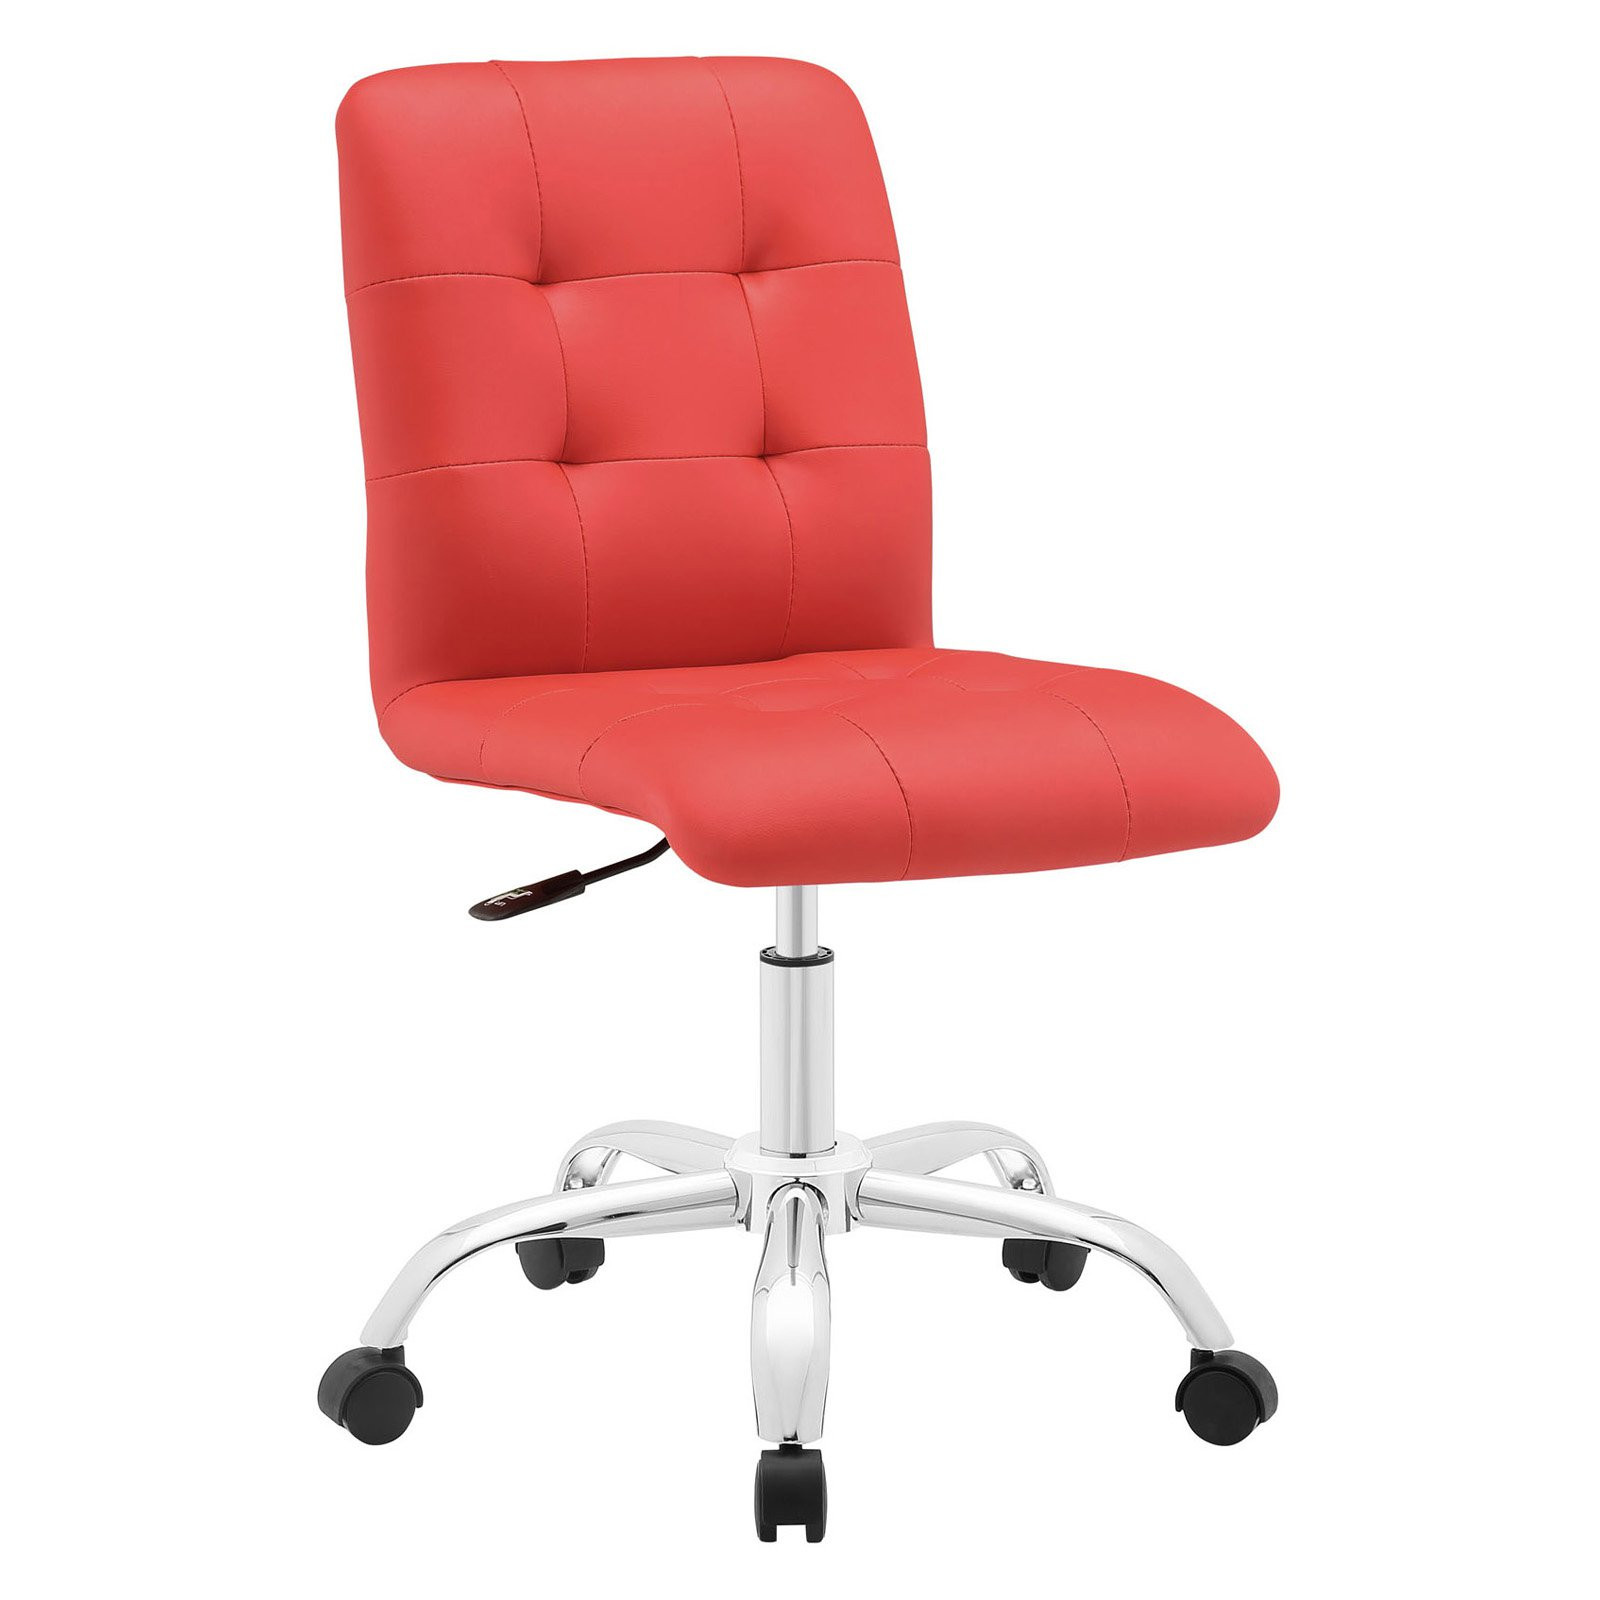 Best ideas about Orange Office Chair . Save or Pin Orange fice Chairs richfielduniversity Now.